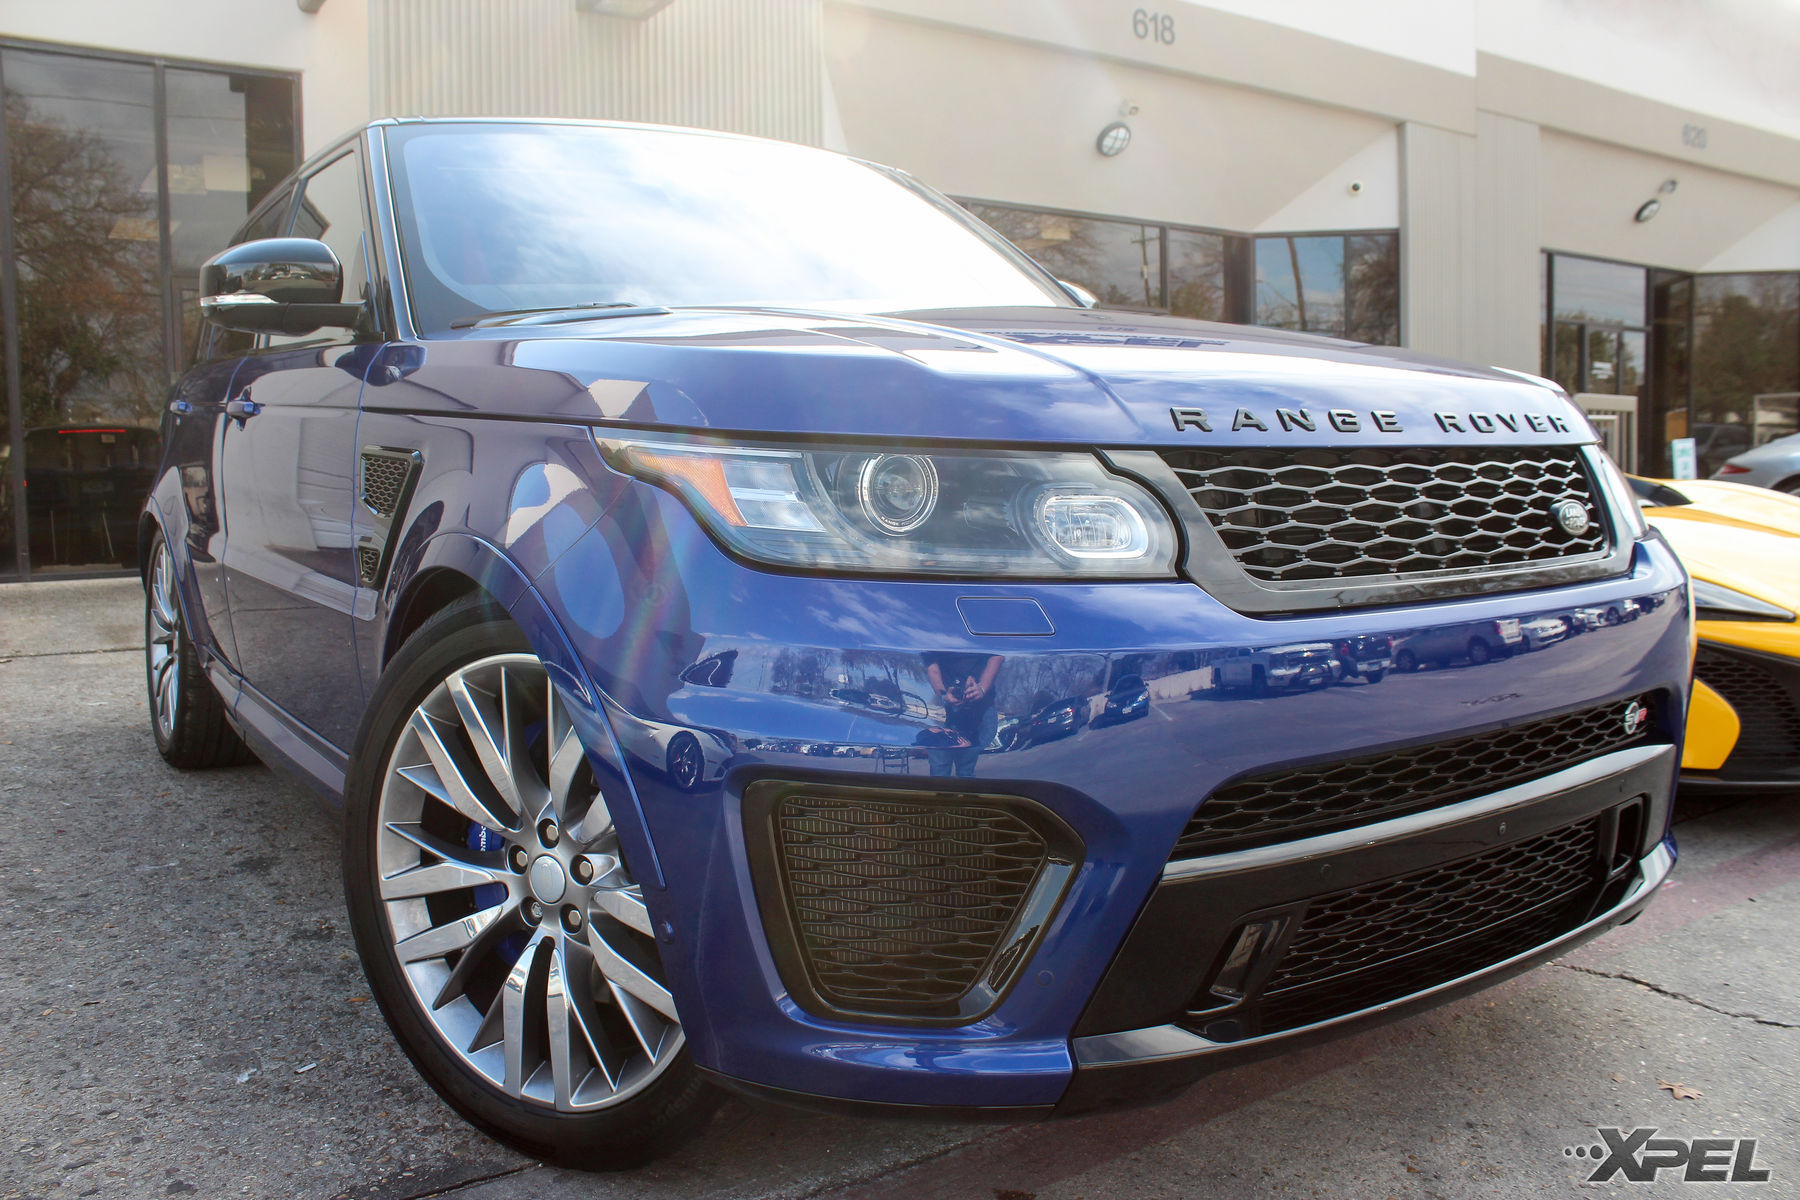 Land Rover Range Rover Sport | 2016 Land Rover Range Rover Sport SVR with XPEL ULTIMATE